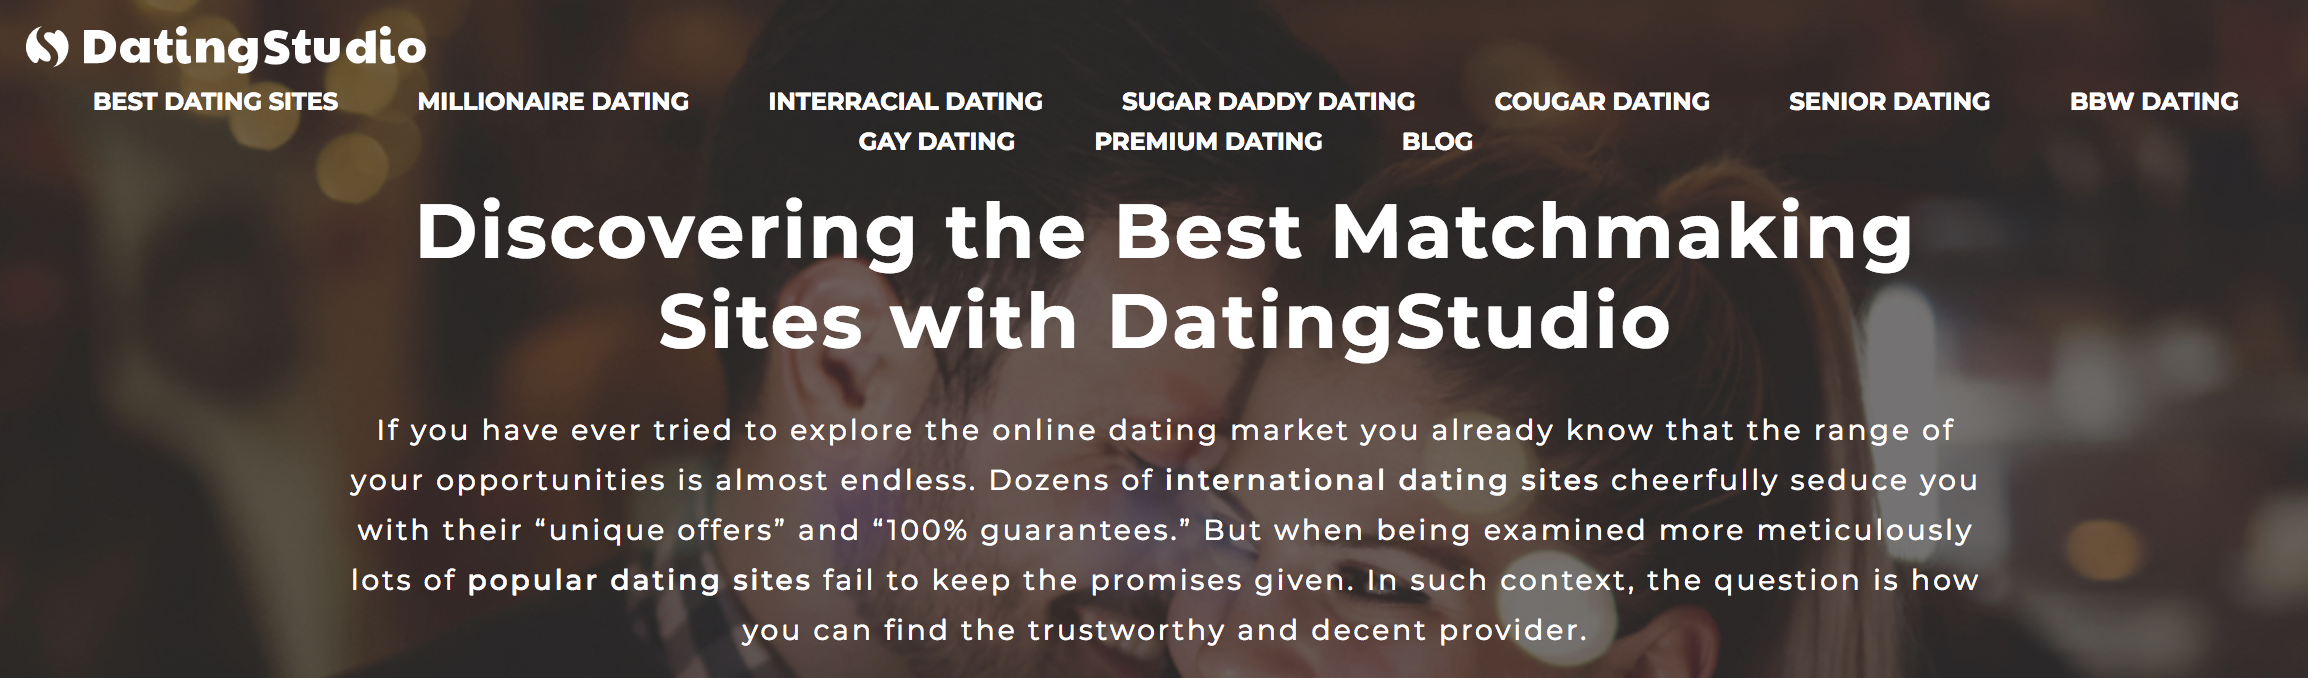 How to market your dating site